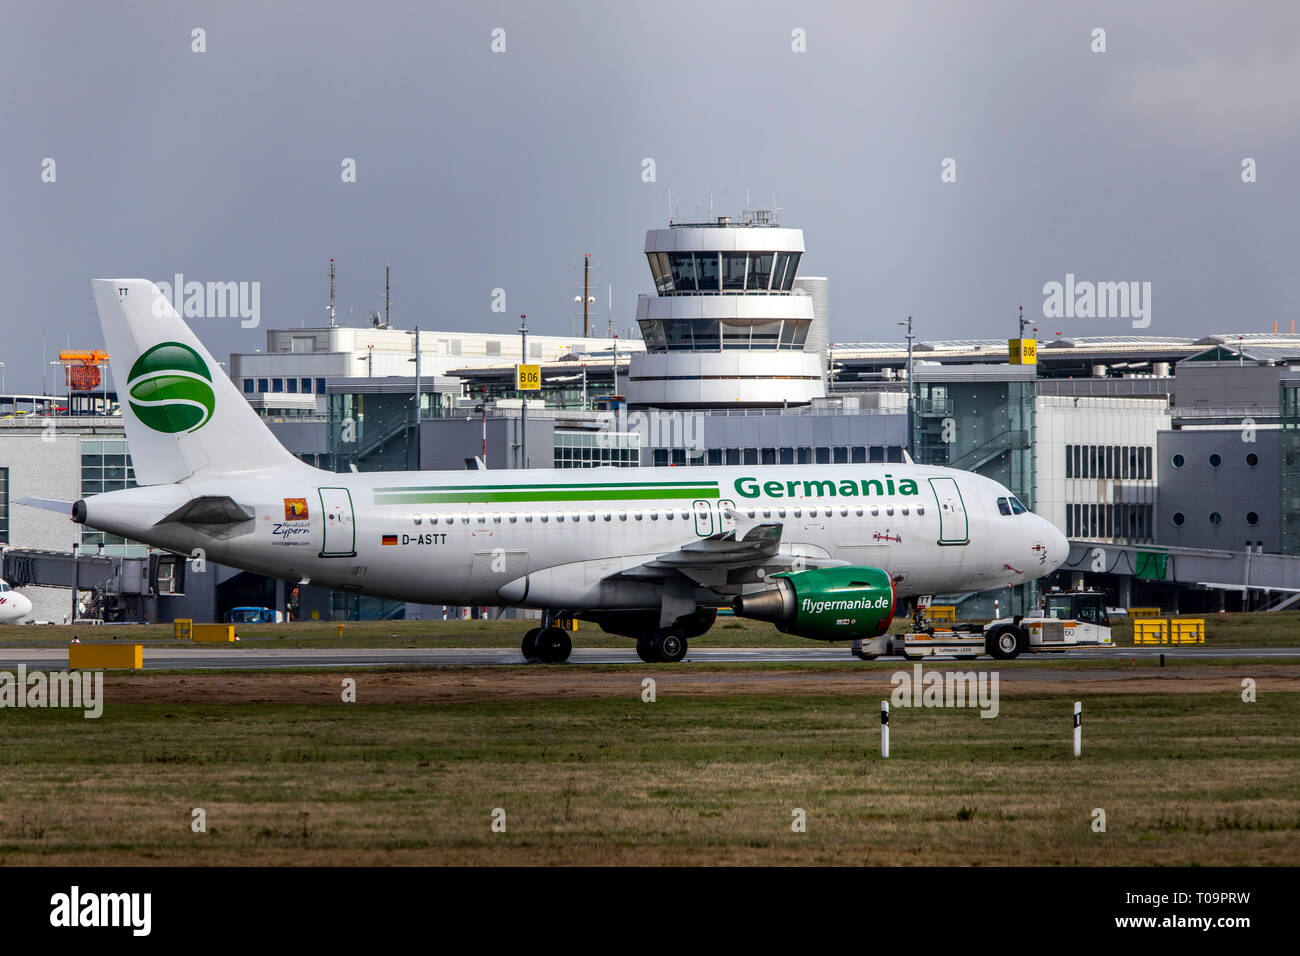 Dusseldorf International Airport, DUS, parked aircraft of the airline Germania, after the bankruptcy, - Stock Image